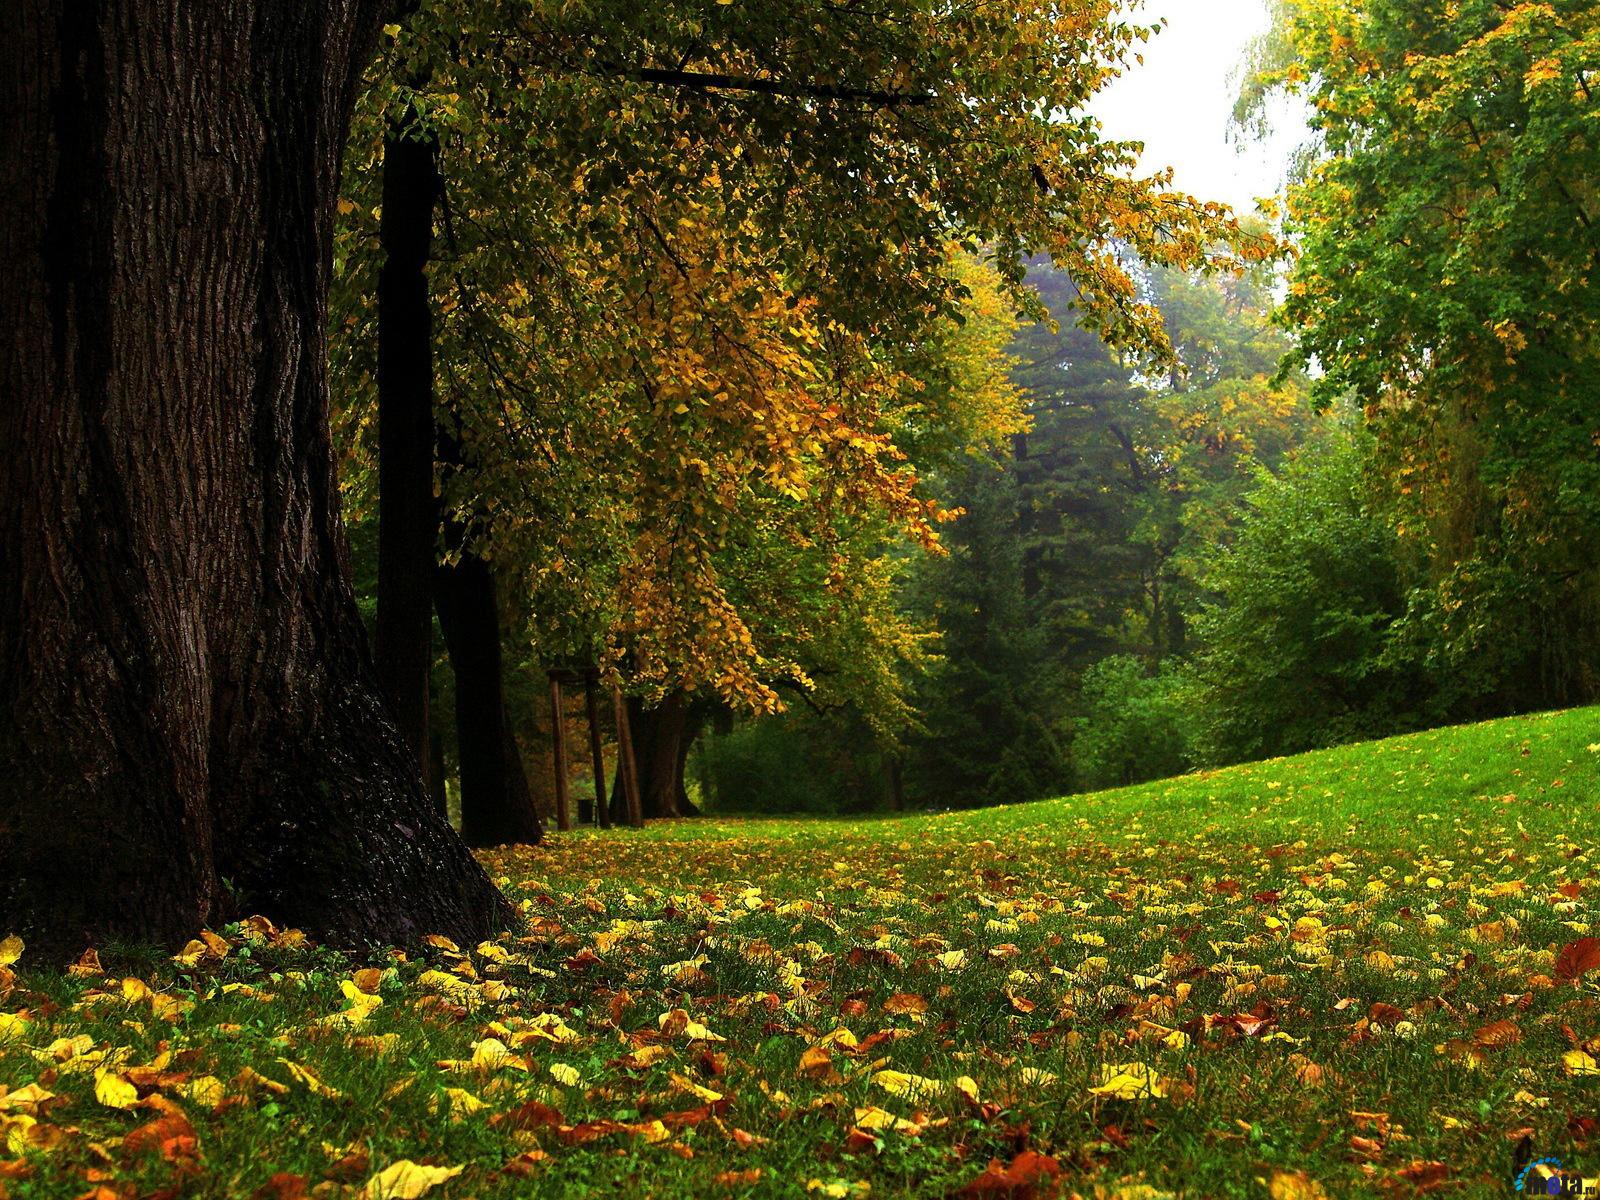 Download Wallpaper Early autumn 1600 x 1200 Desktop wallpapers and 1600x1200